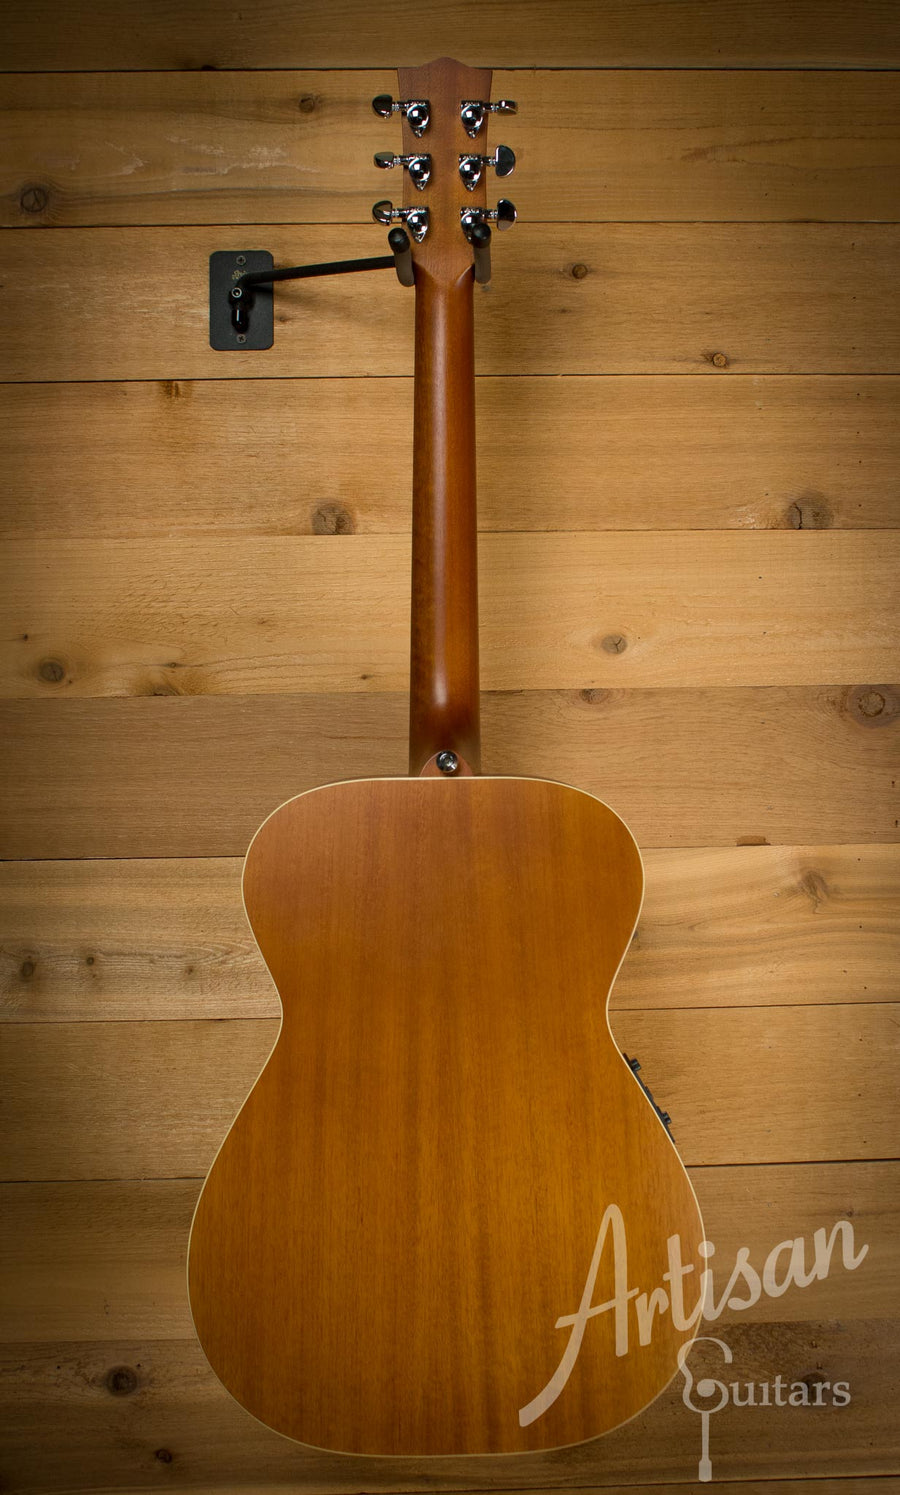 Maton EBG808 TE Tommy Emmanuel Signature with AP5-Pro pickup ID-10116 - Artisan Guitars